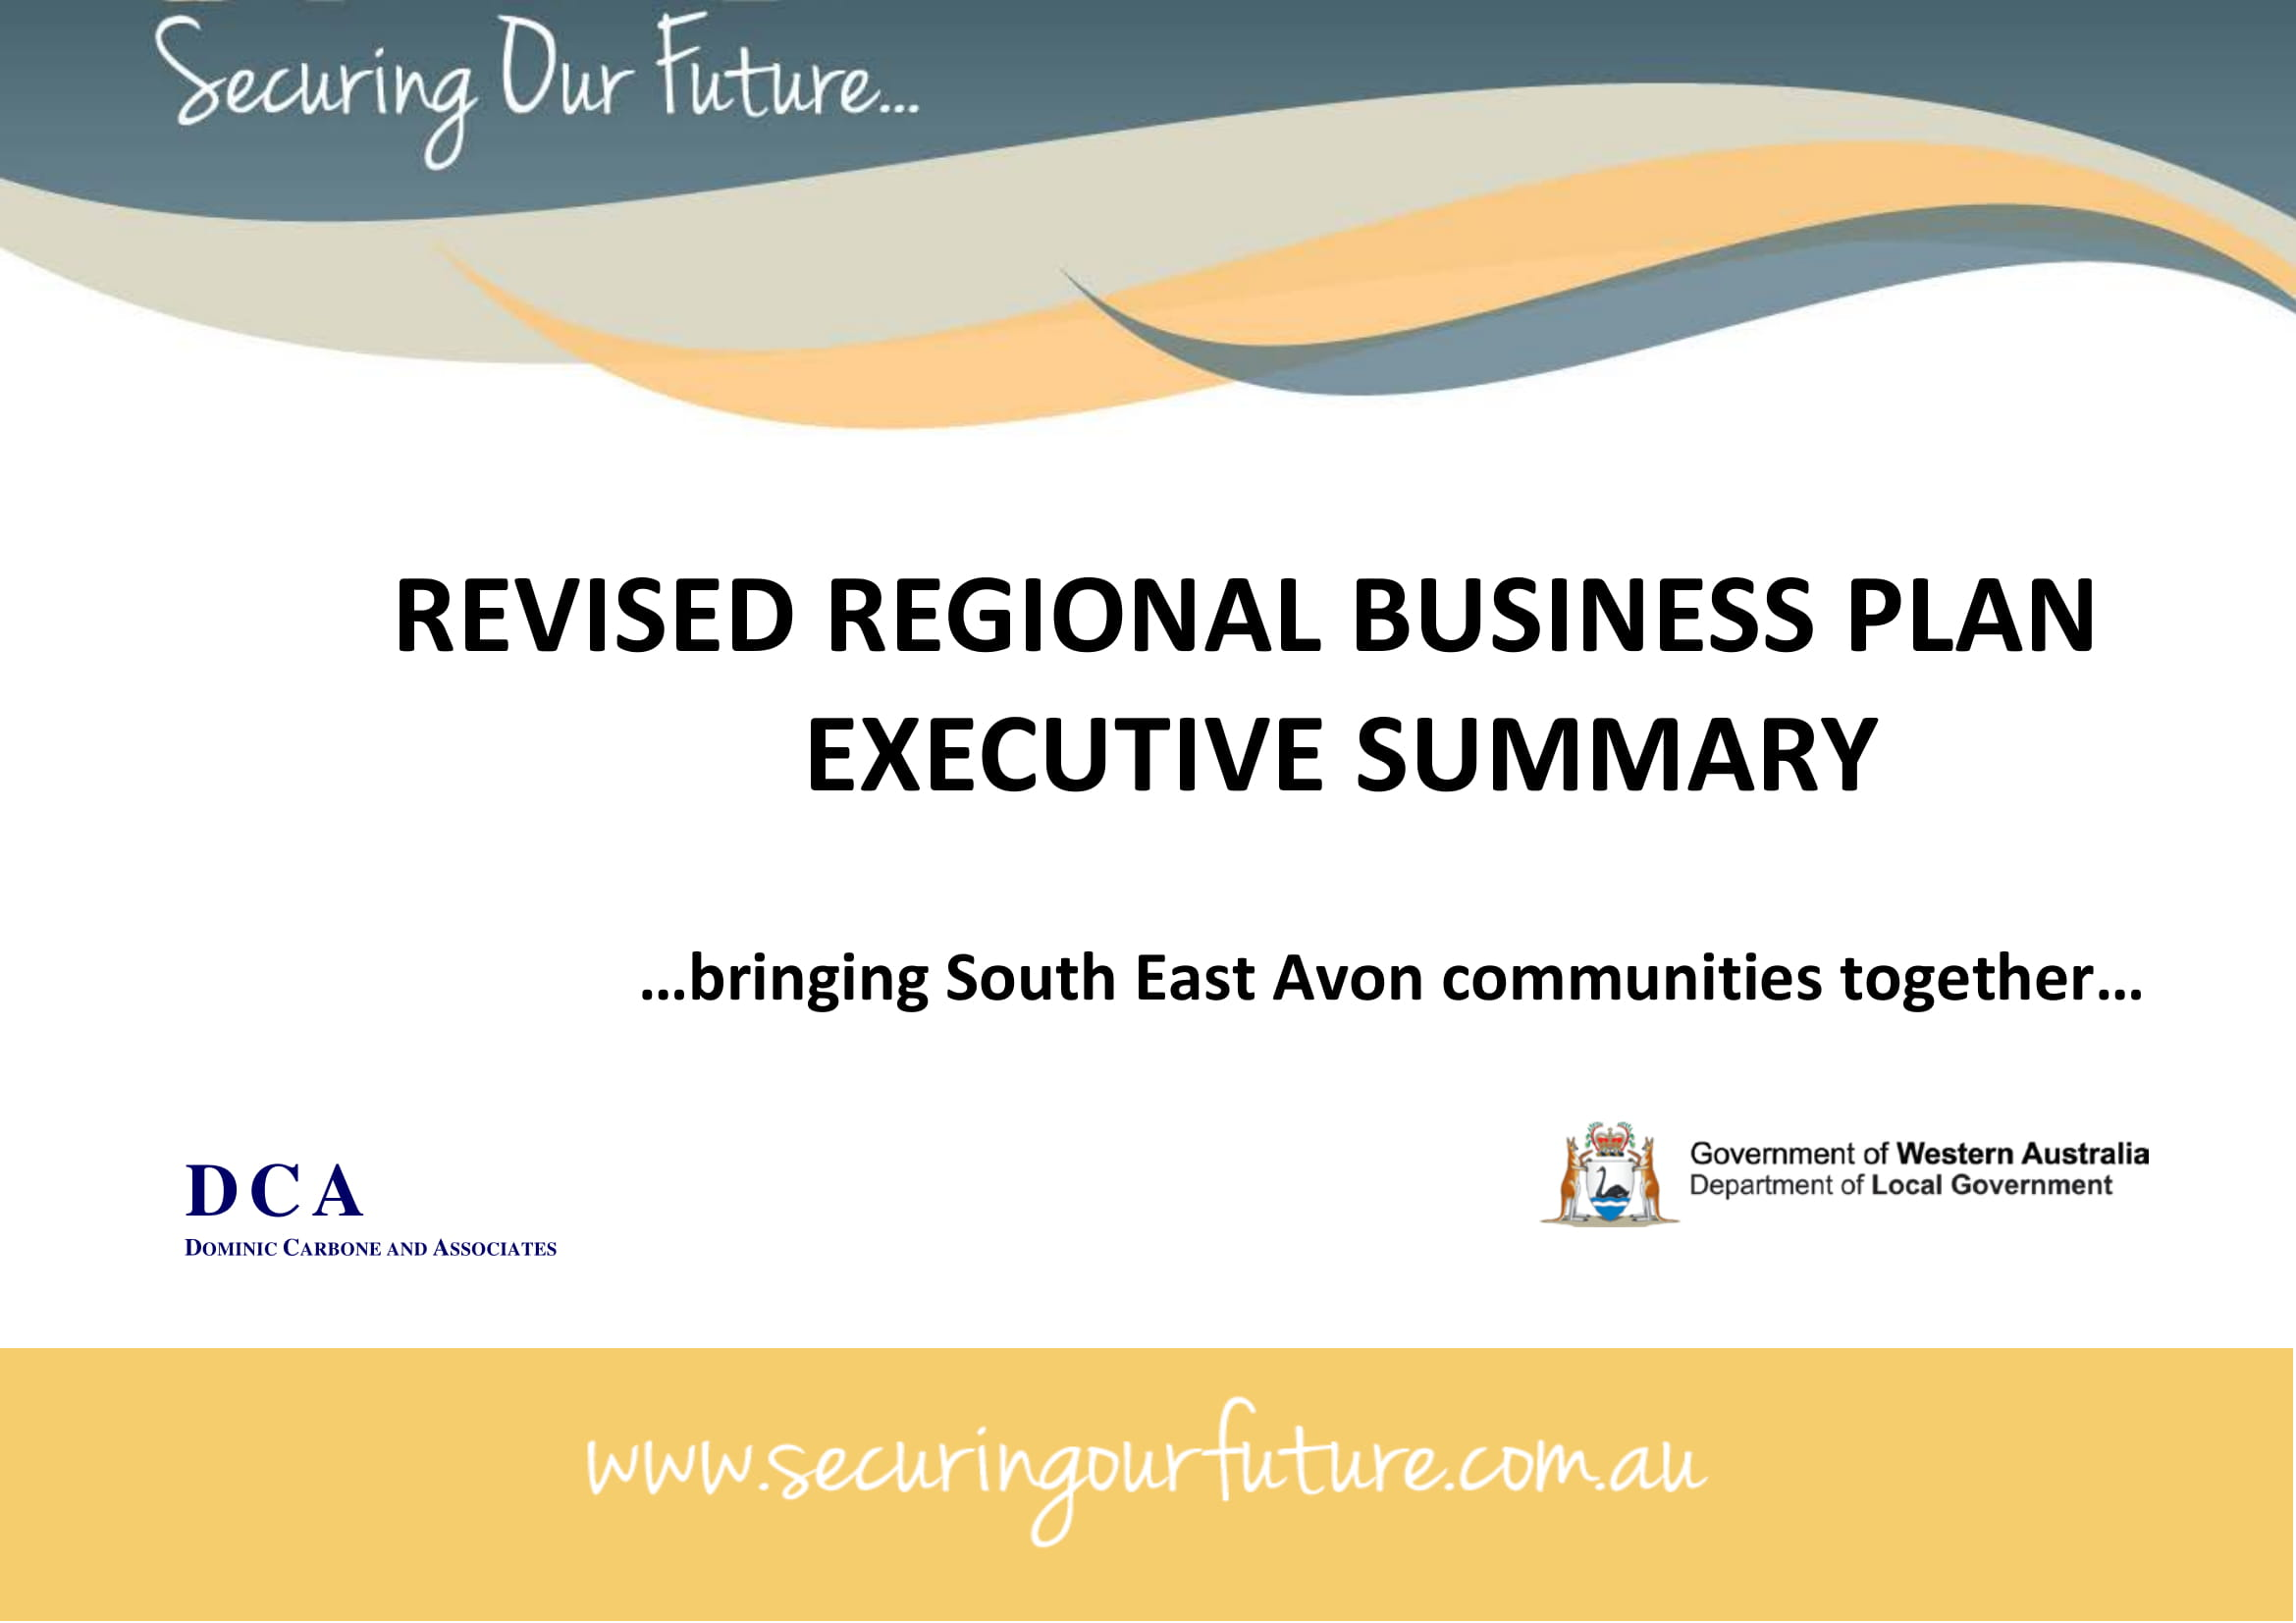 revised regional business plan executive summary example